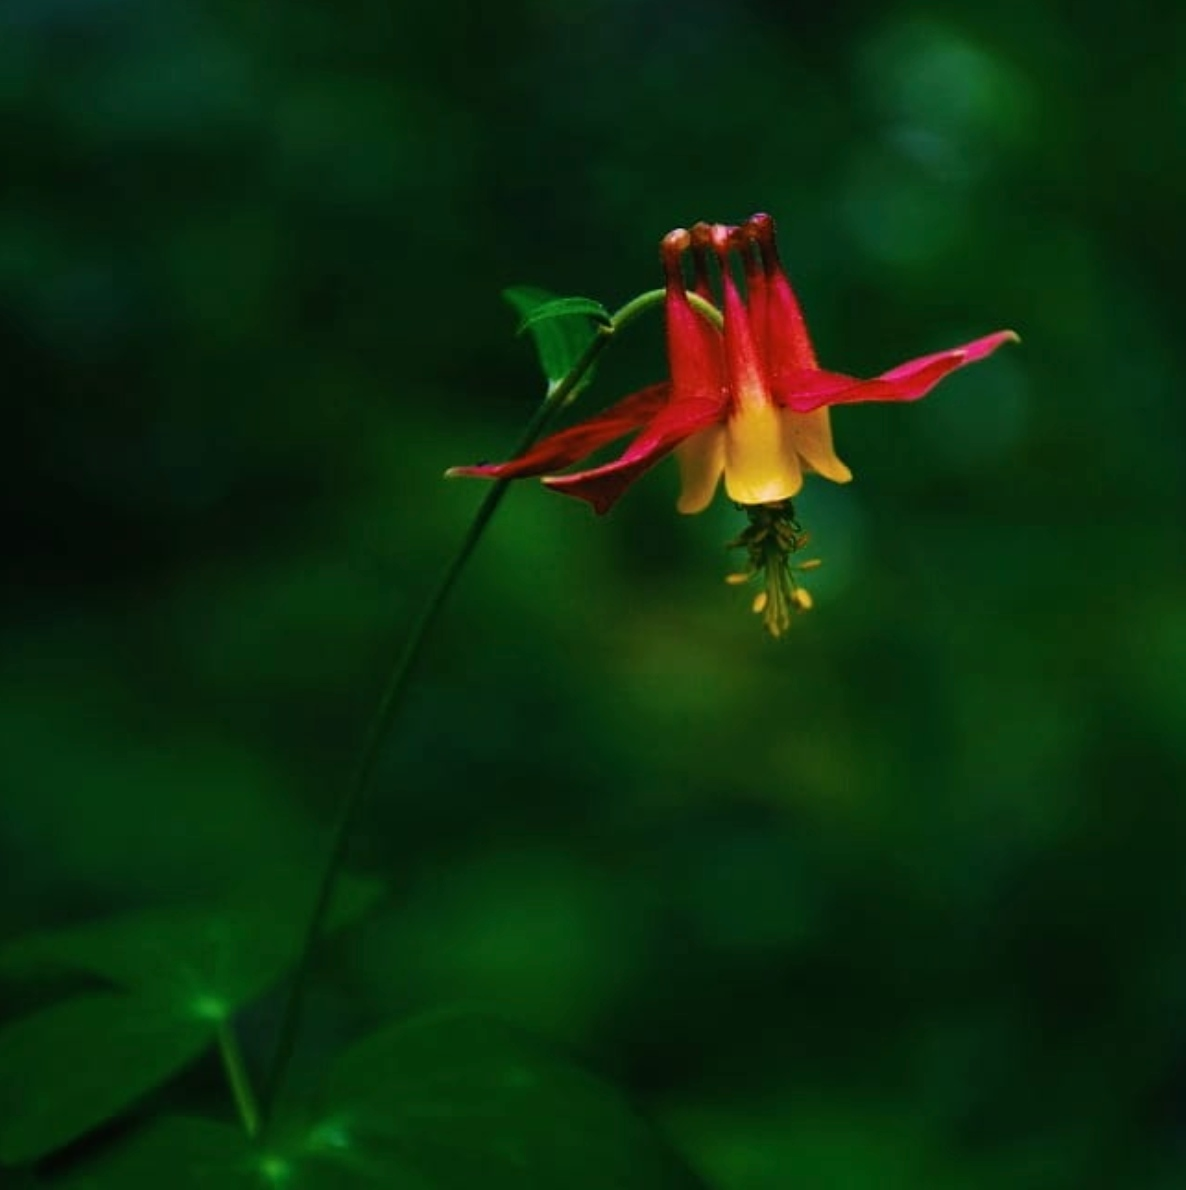 A lone Canadian columbine against a blurry emerald green tree